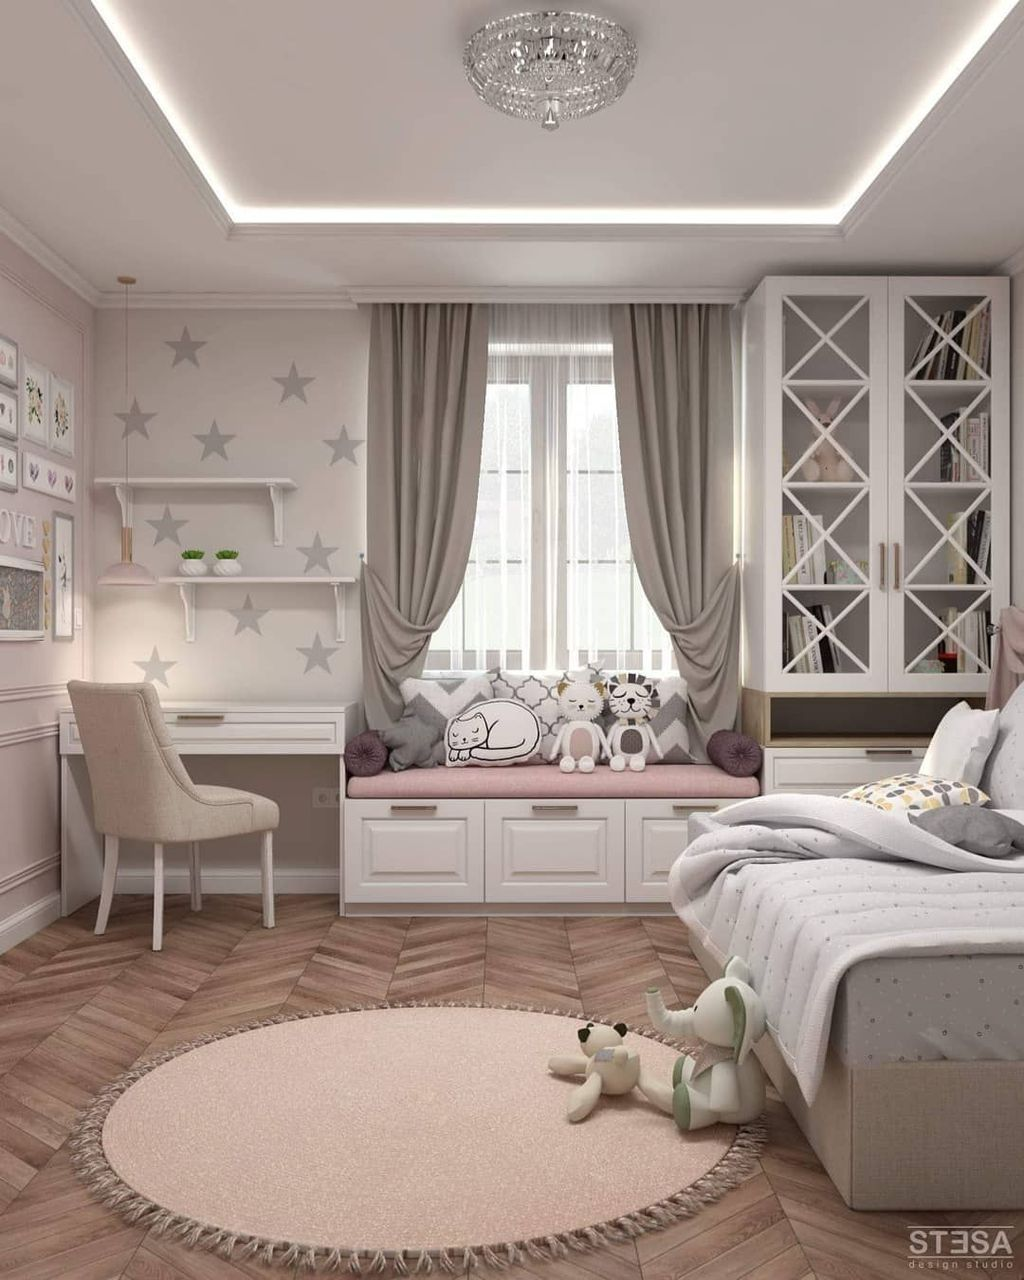 40+ Stunning Girls Bedroom Designs Ideas You Must Have #girlsbedroom